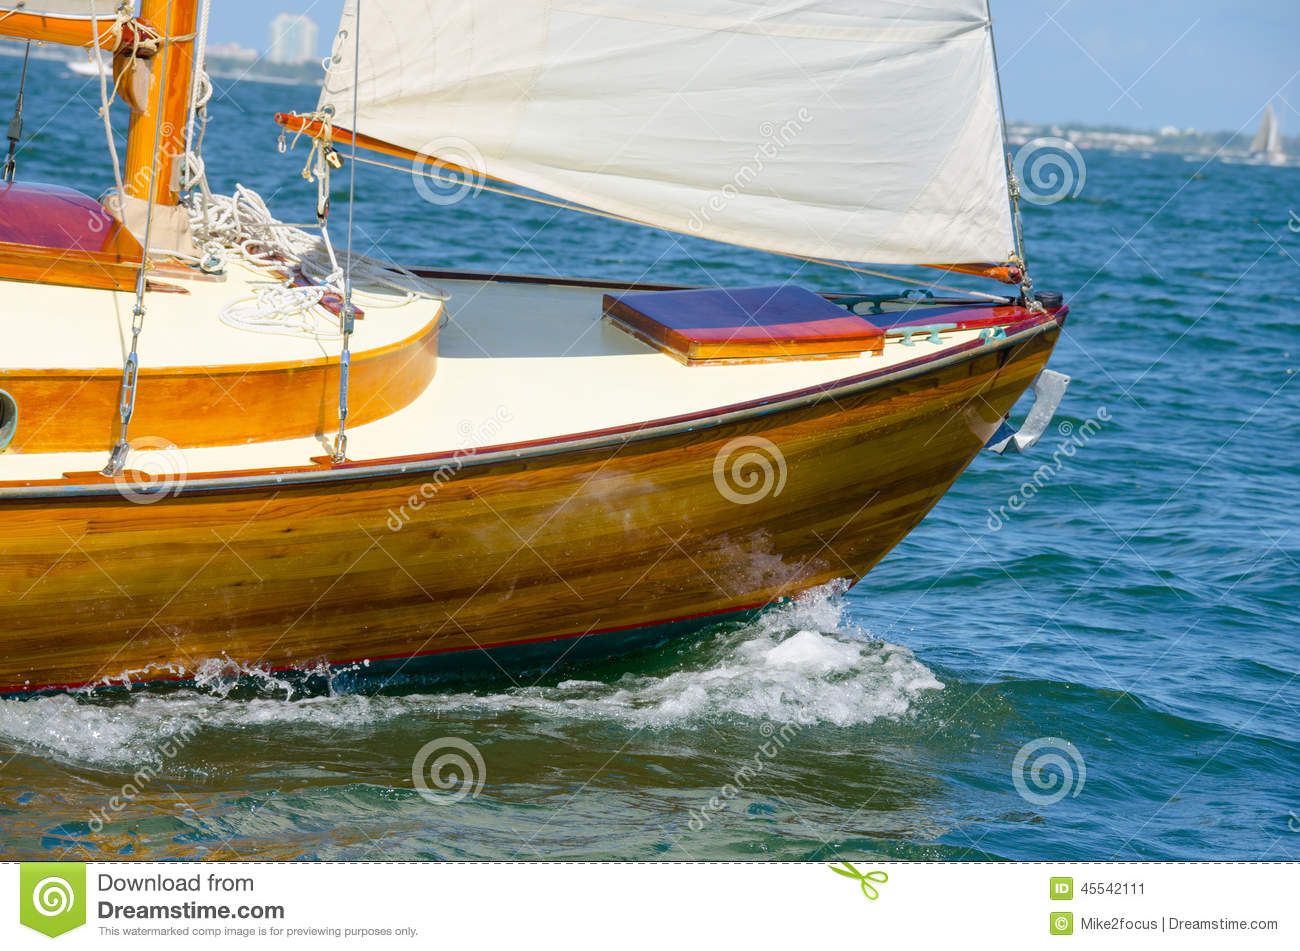 ... through blue water with refllections of the boat wake on the hull